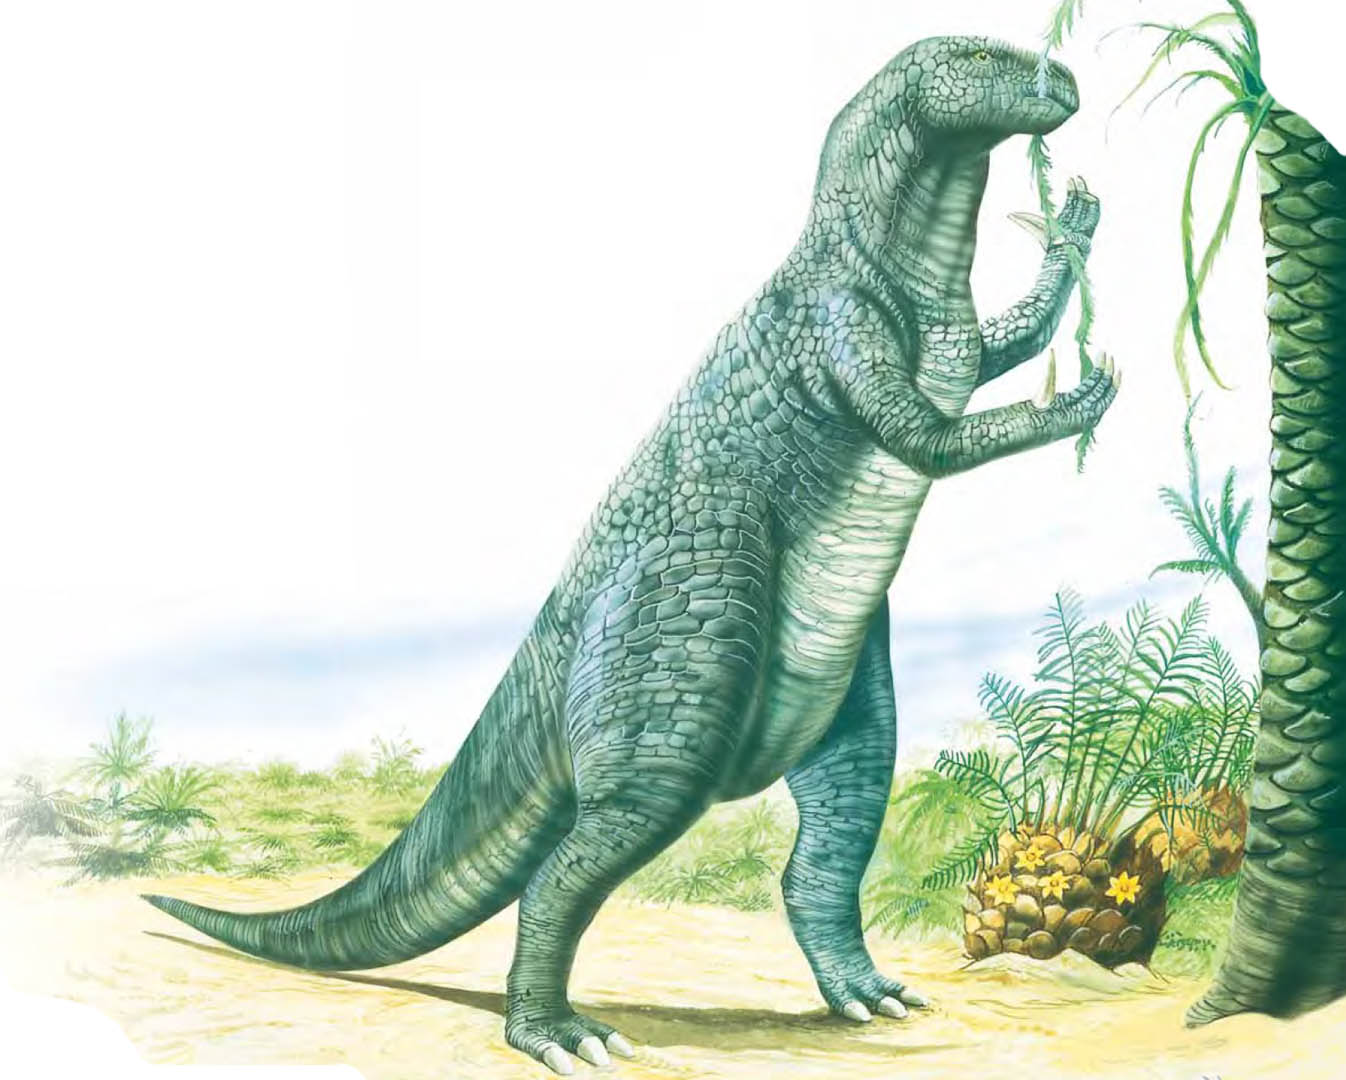 Iguanodon Eating From Tree